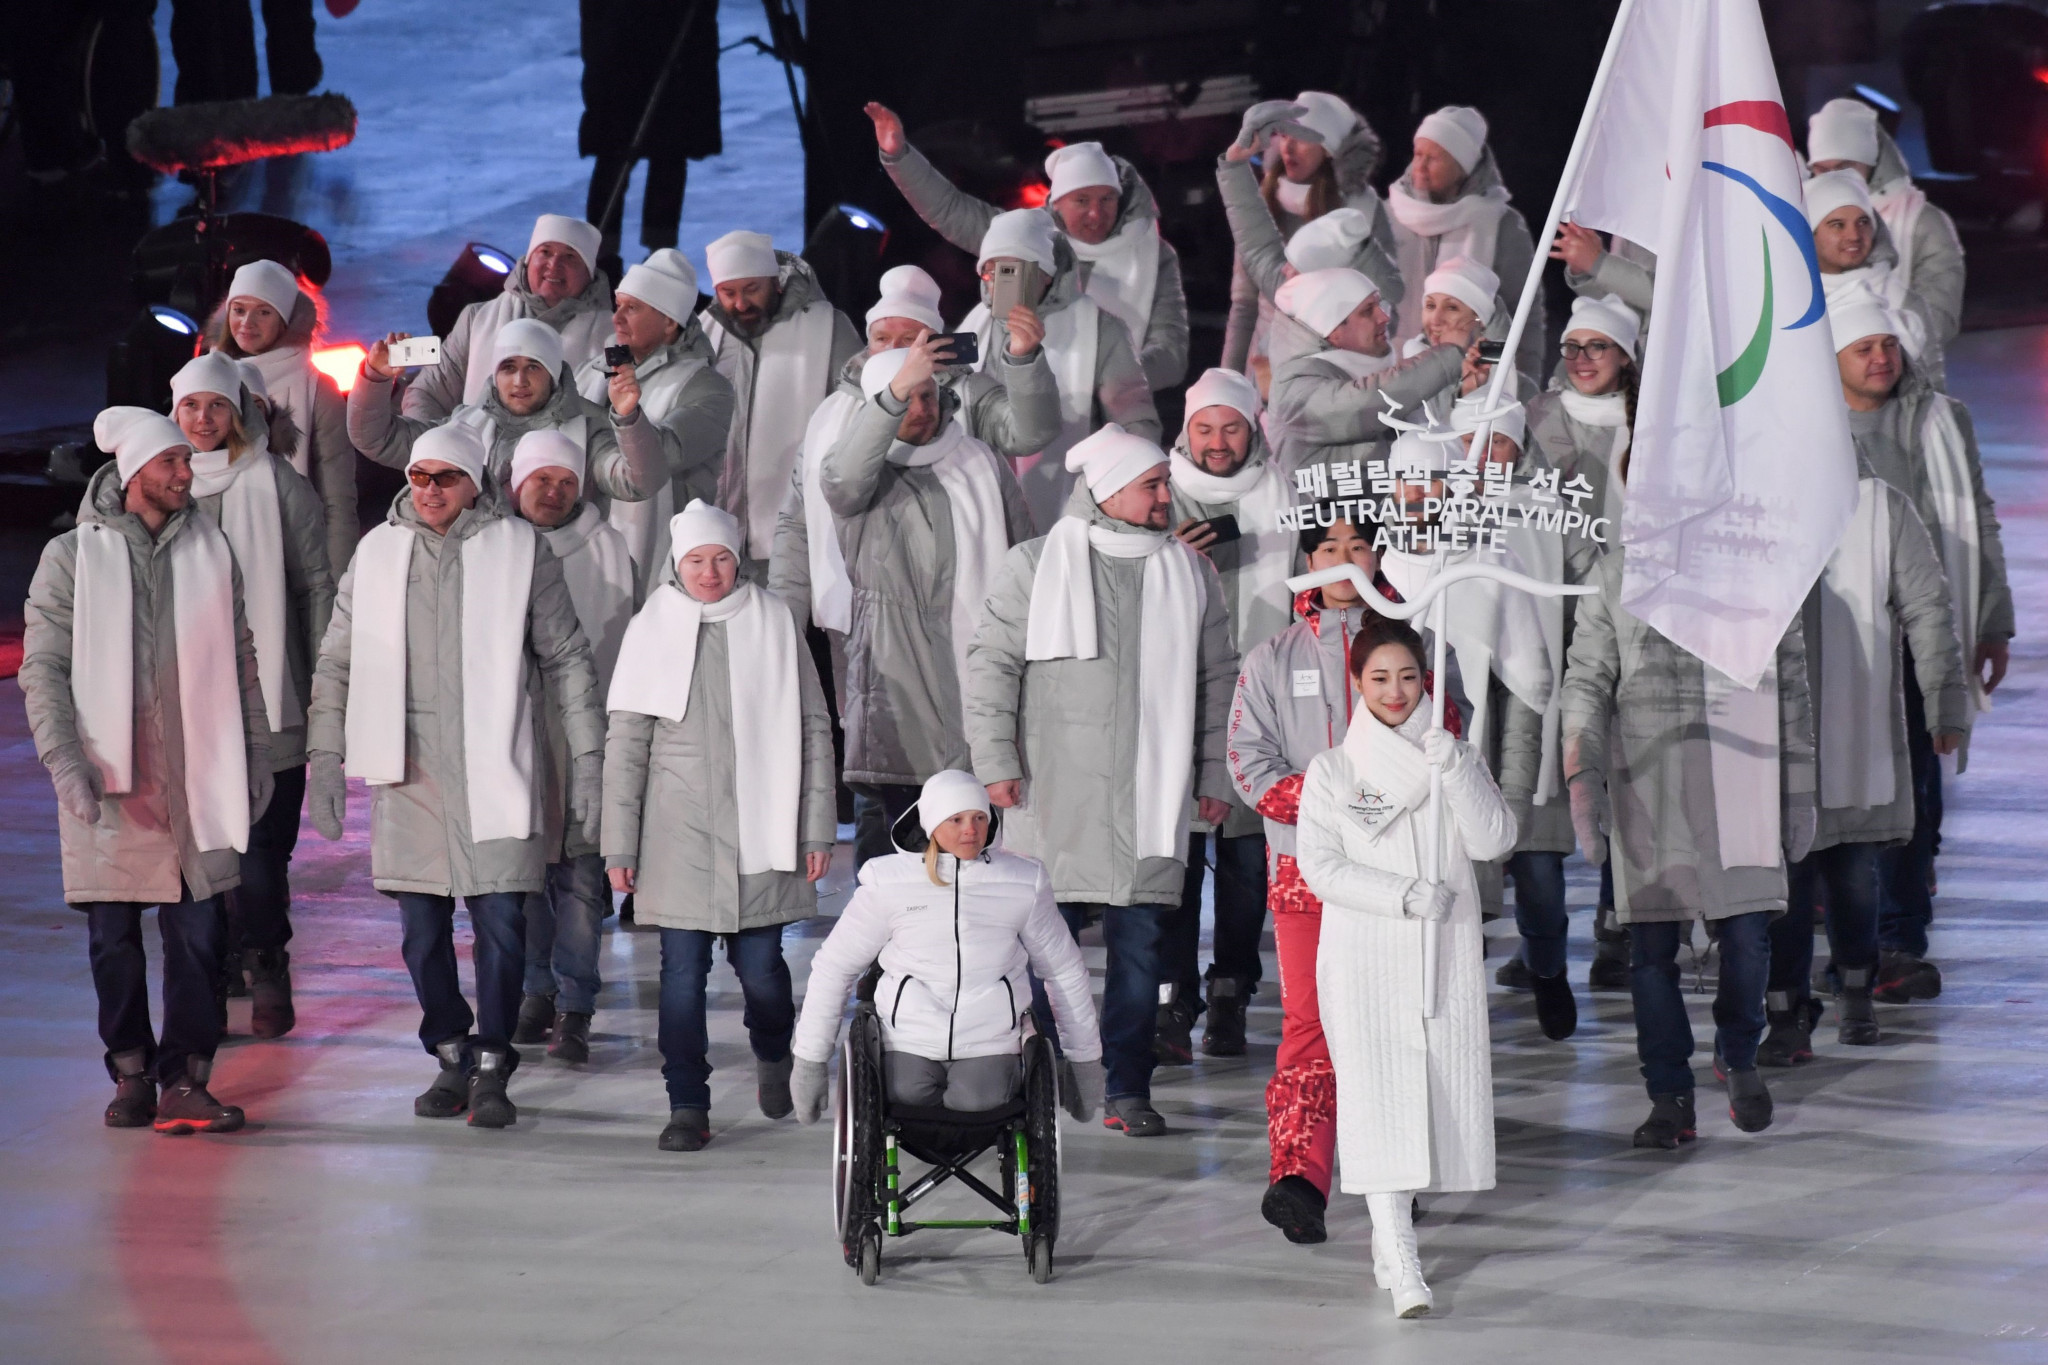 Russia are competing under the banner of Neutral Paralympic Athletes at Pyeongchang 2018 ©Getty Images